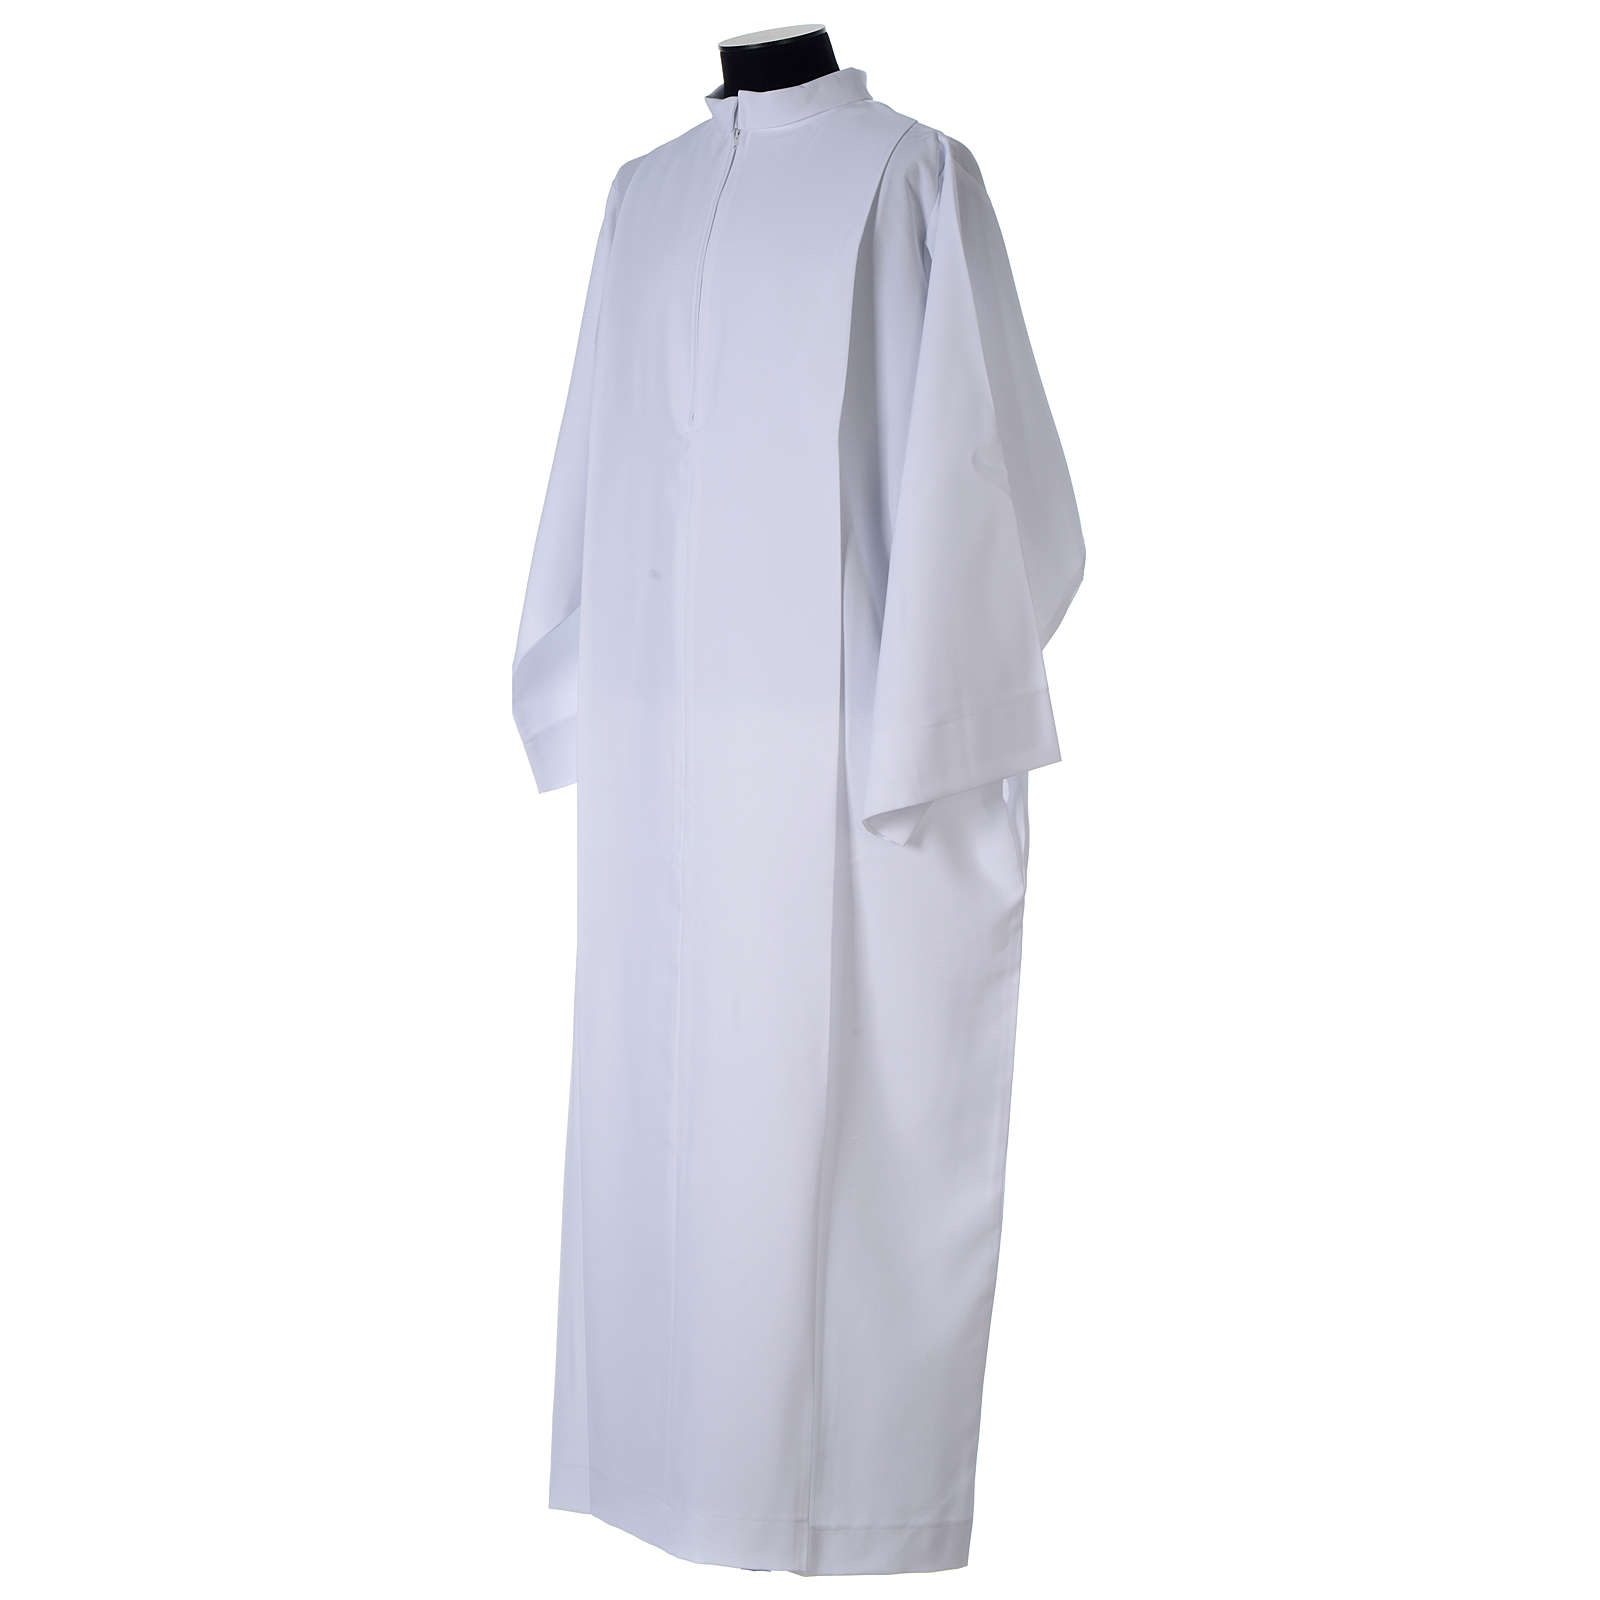 Clerical Alb with front zipper, 100% polyester 4